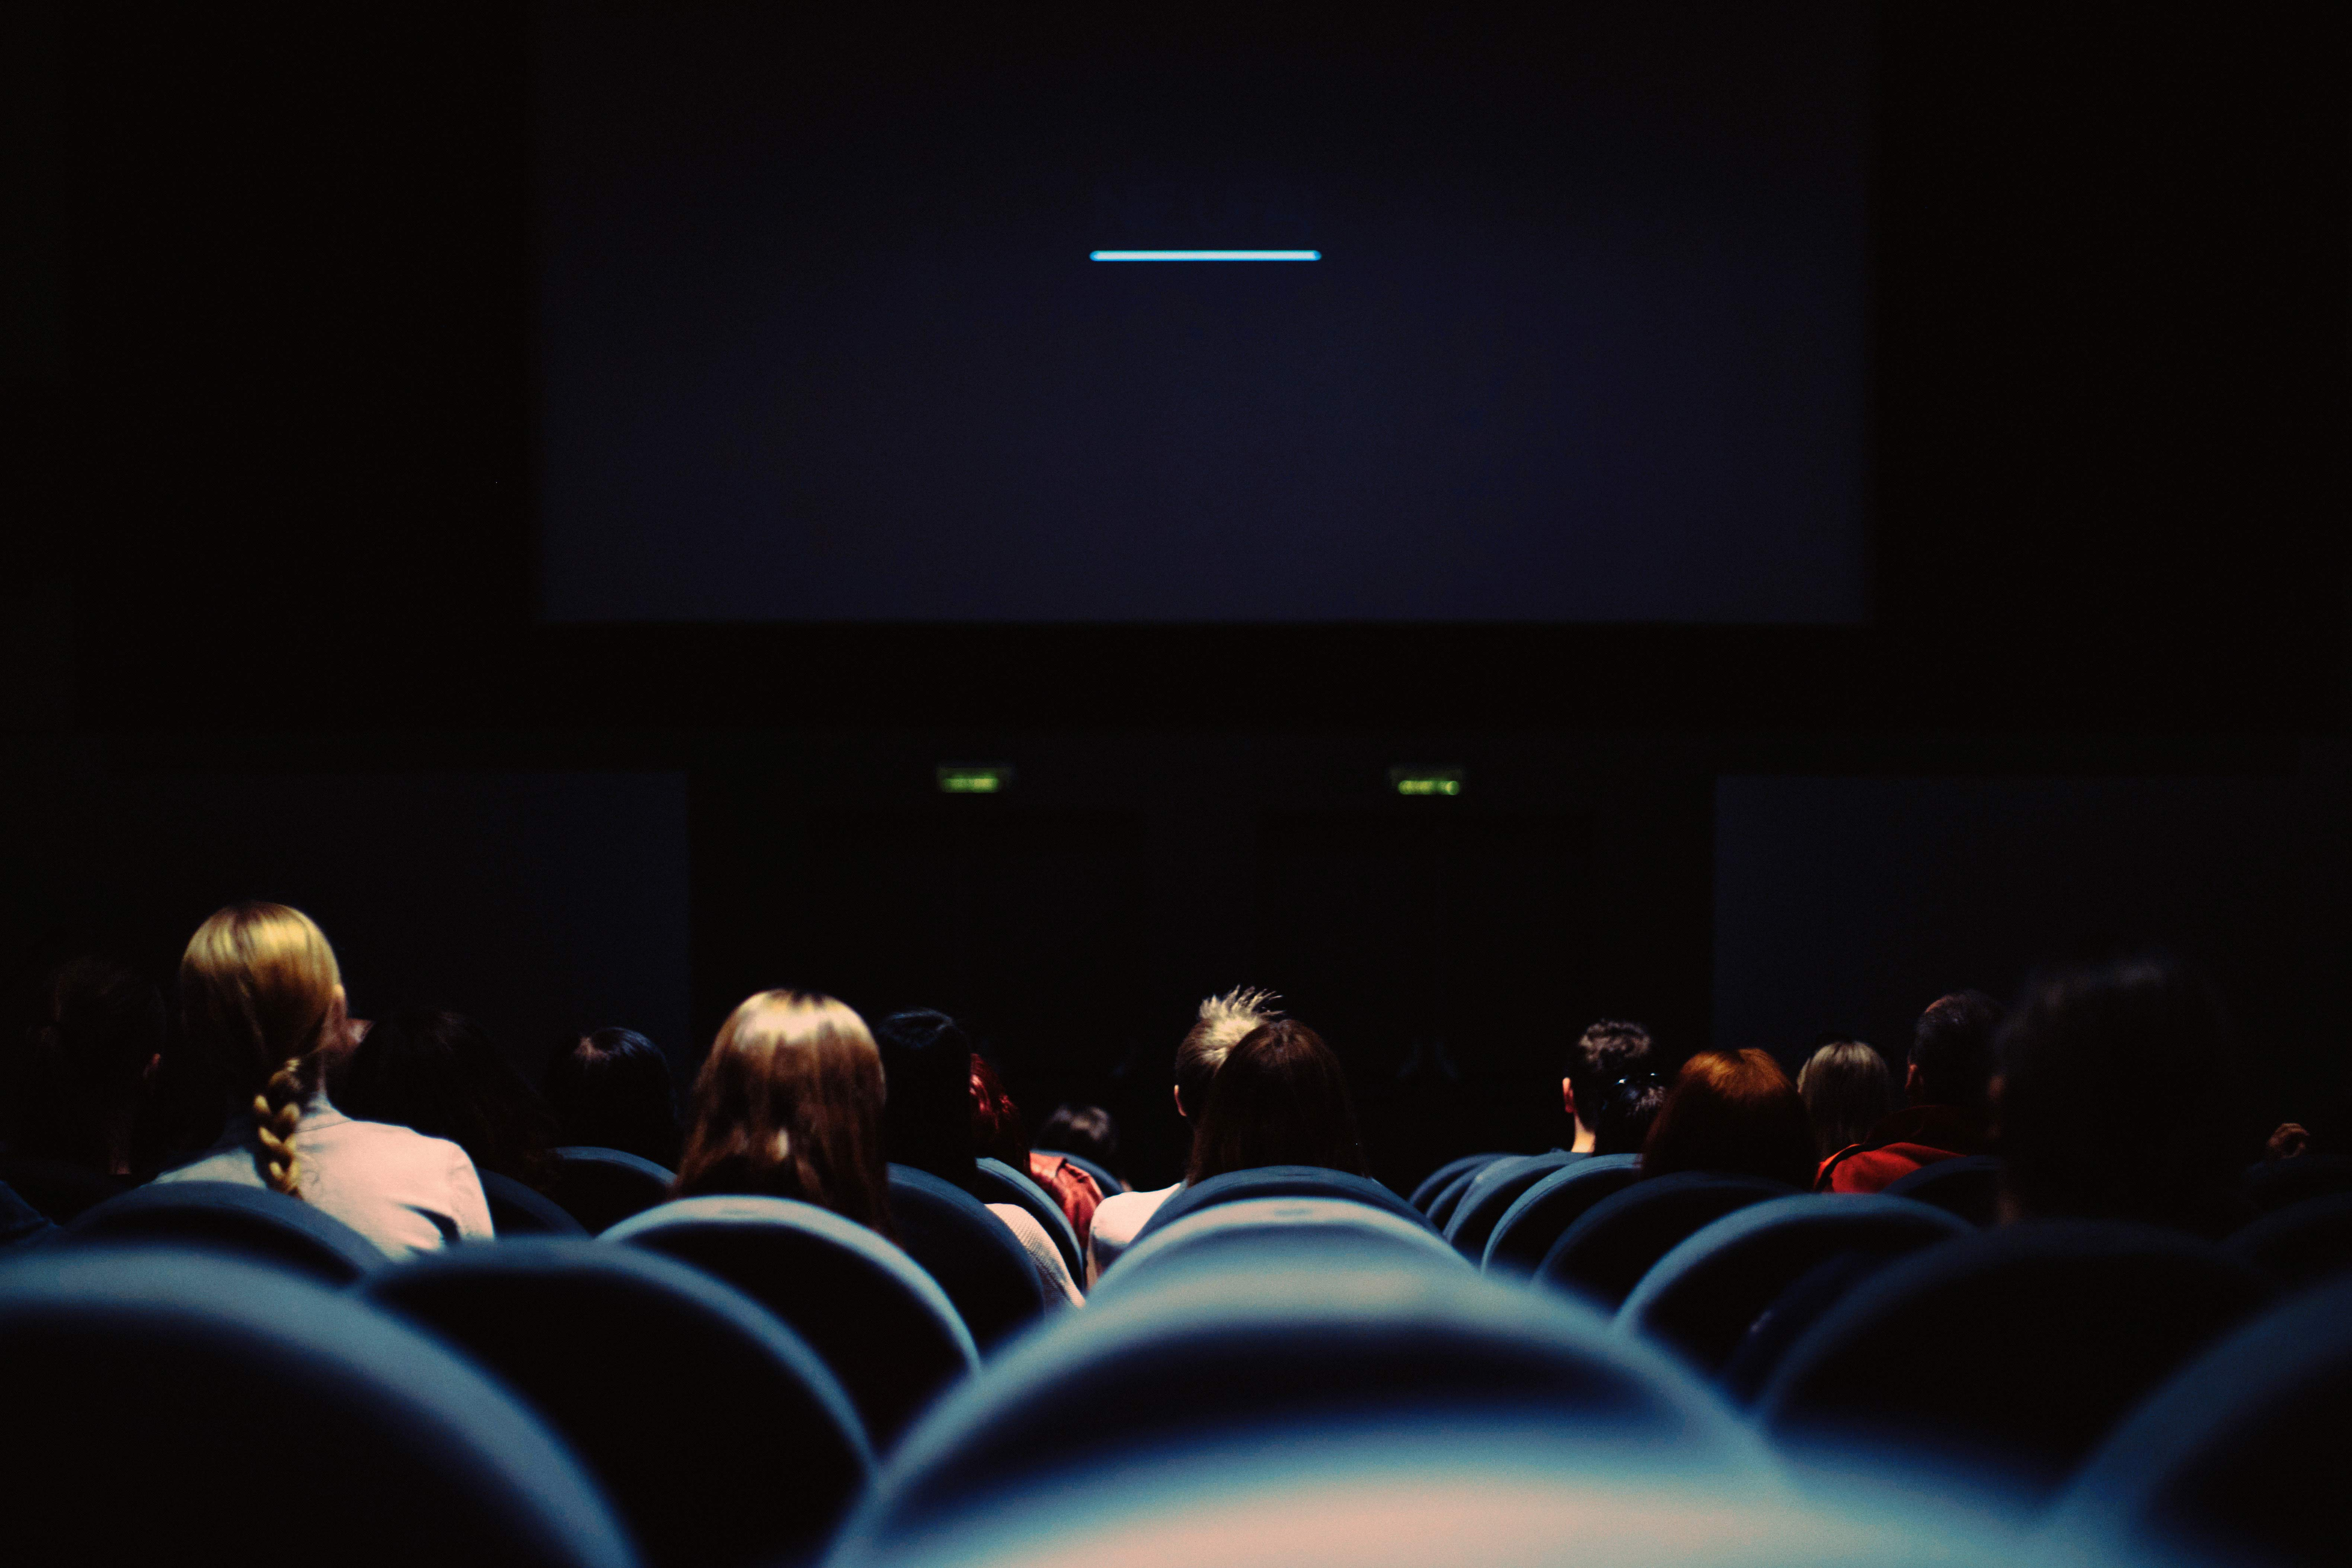 5 Pandemic Movies To Watch During The nCoV Alert